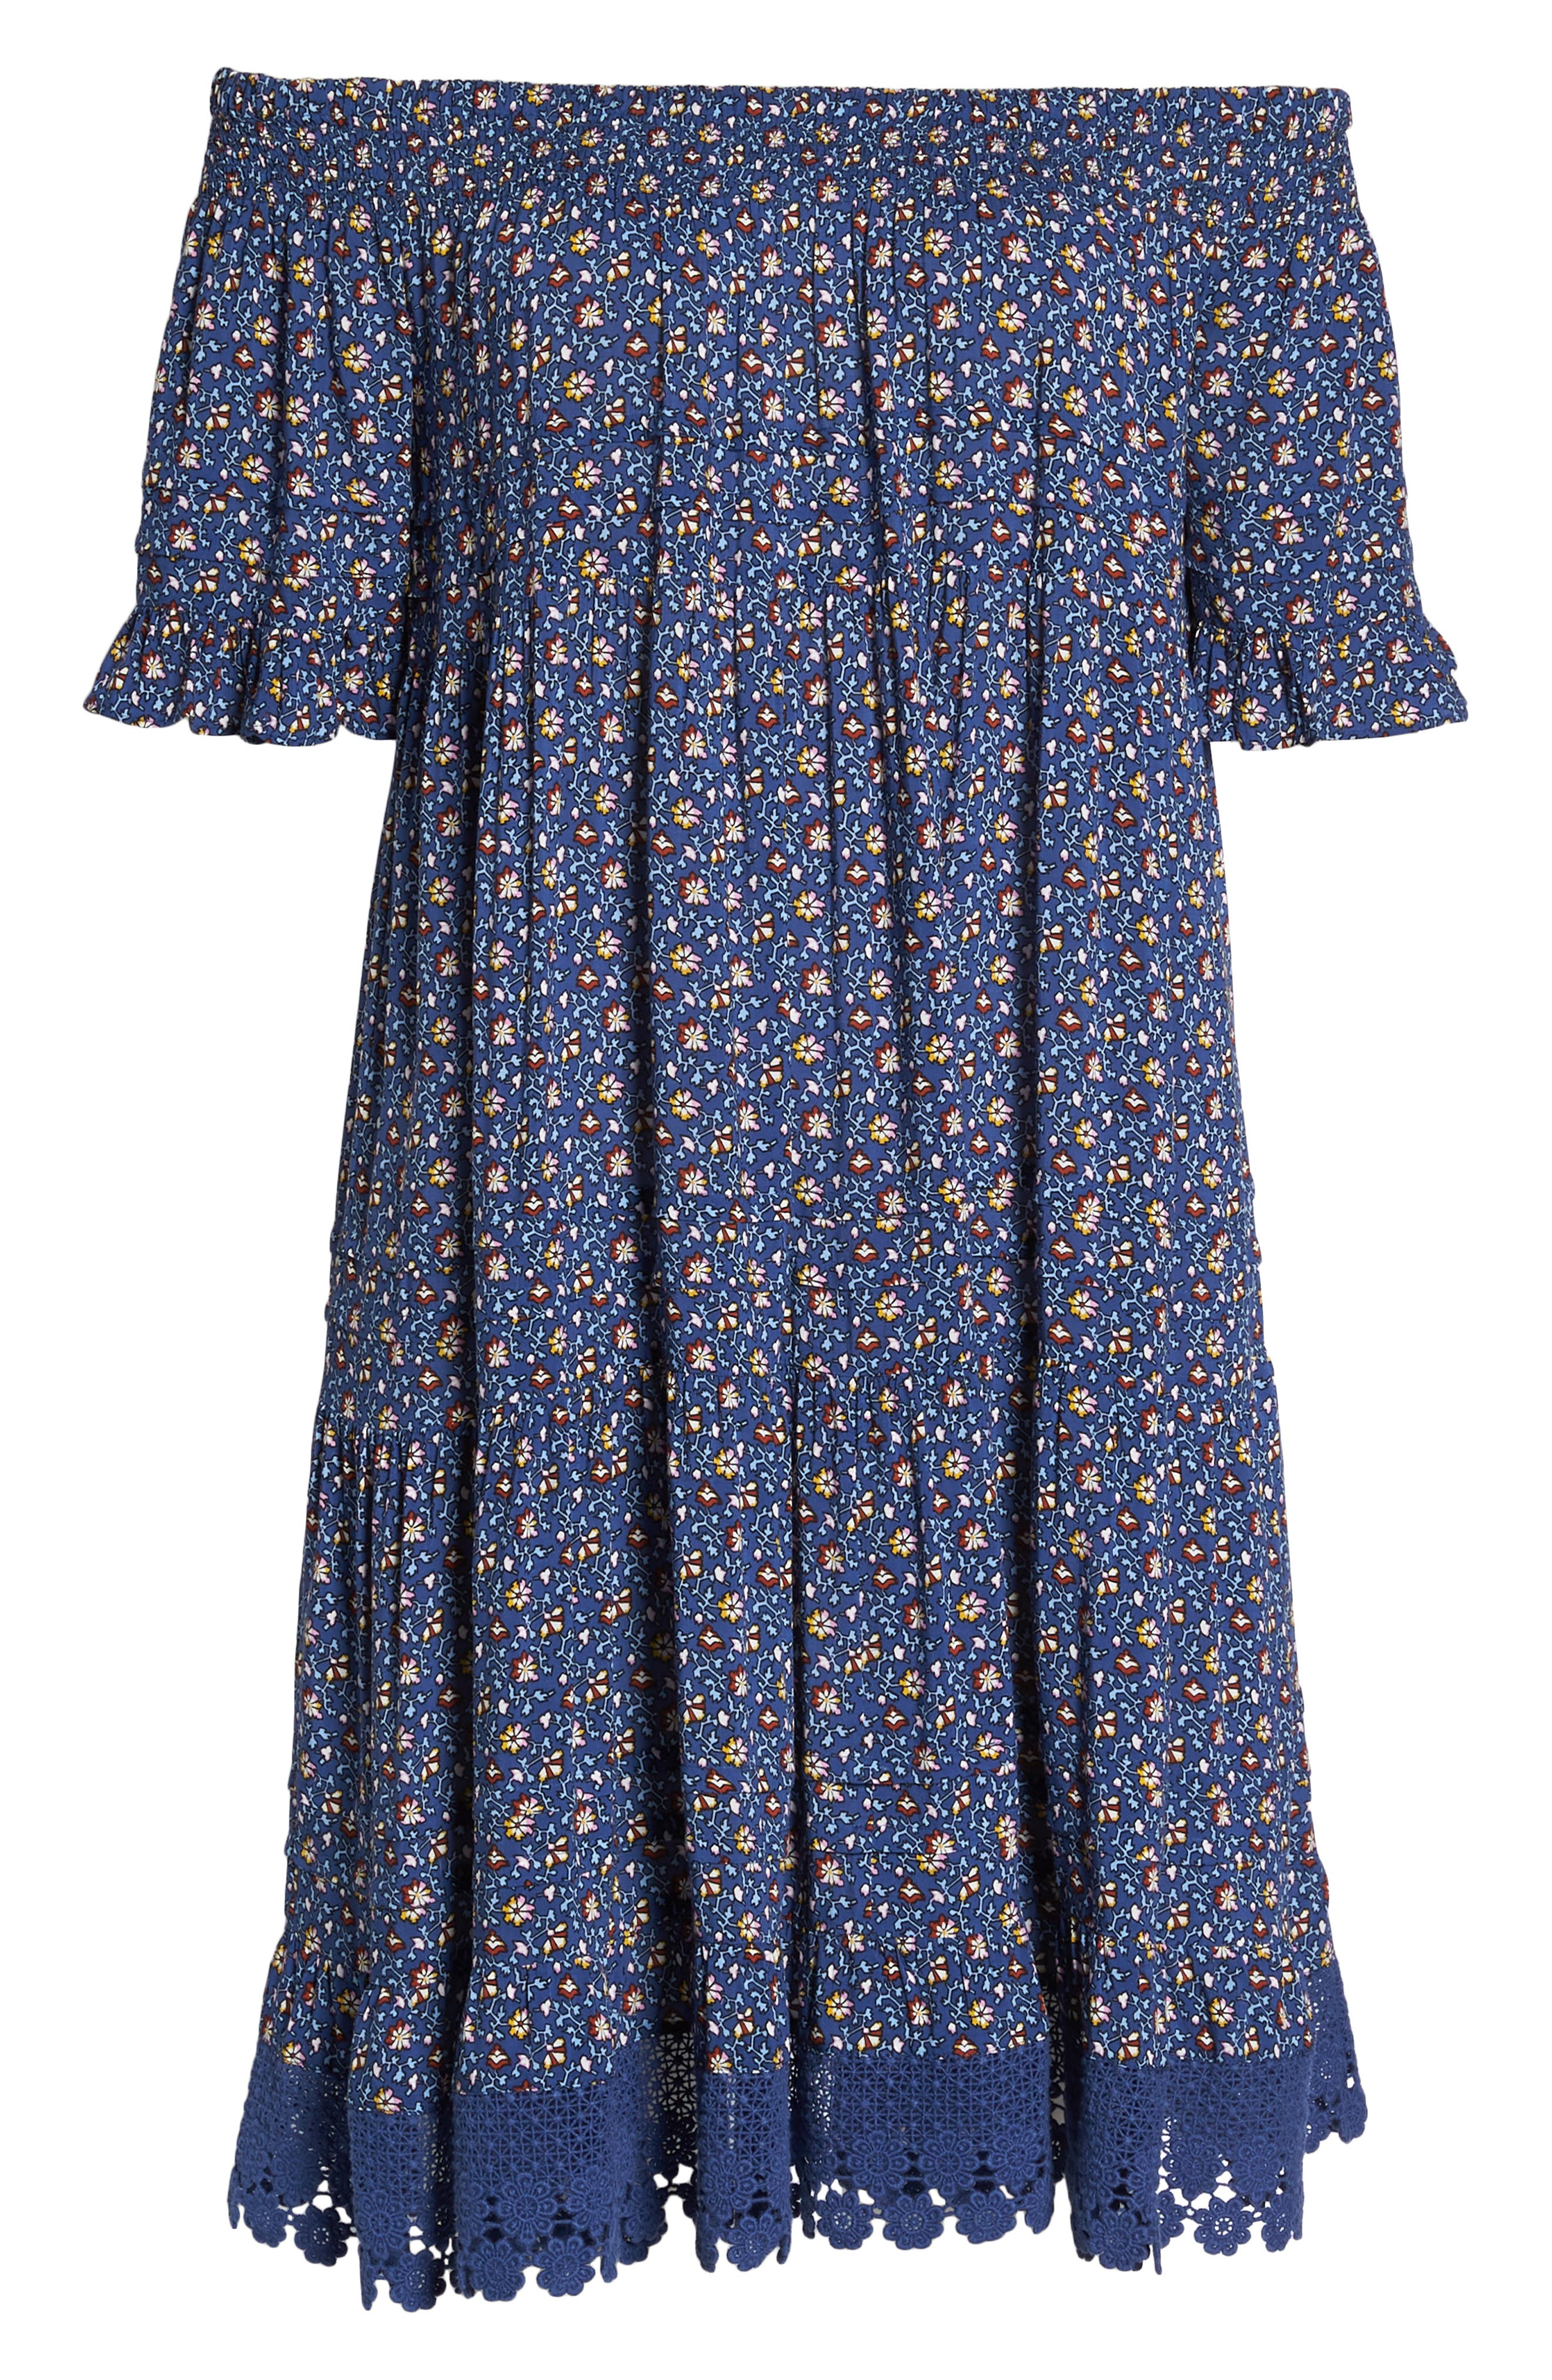 Wild Pansy Off the Shoulder Cover-Up Dress,                             Alternate thumbnail 6, color,                             Navy Wild Pansy